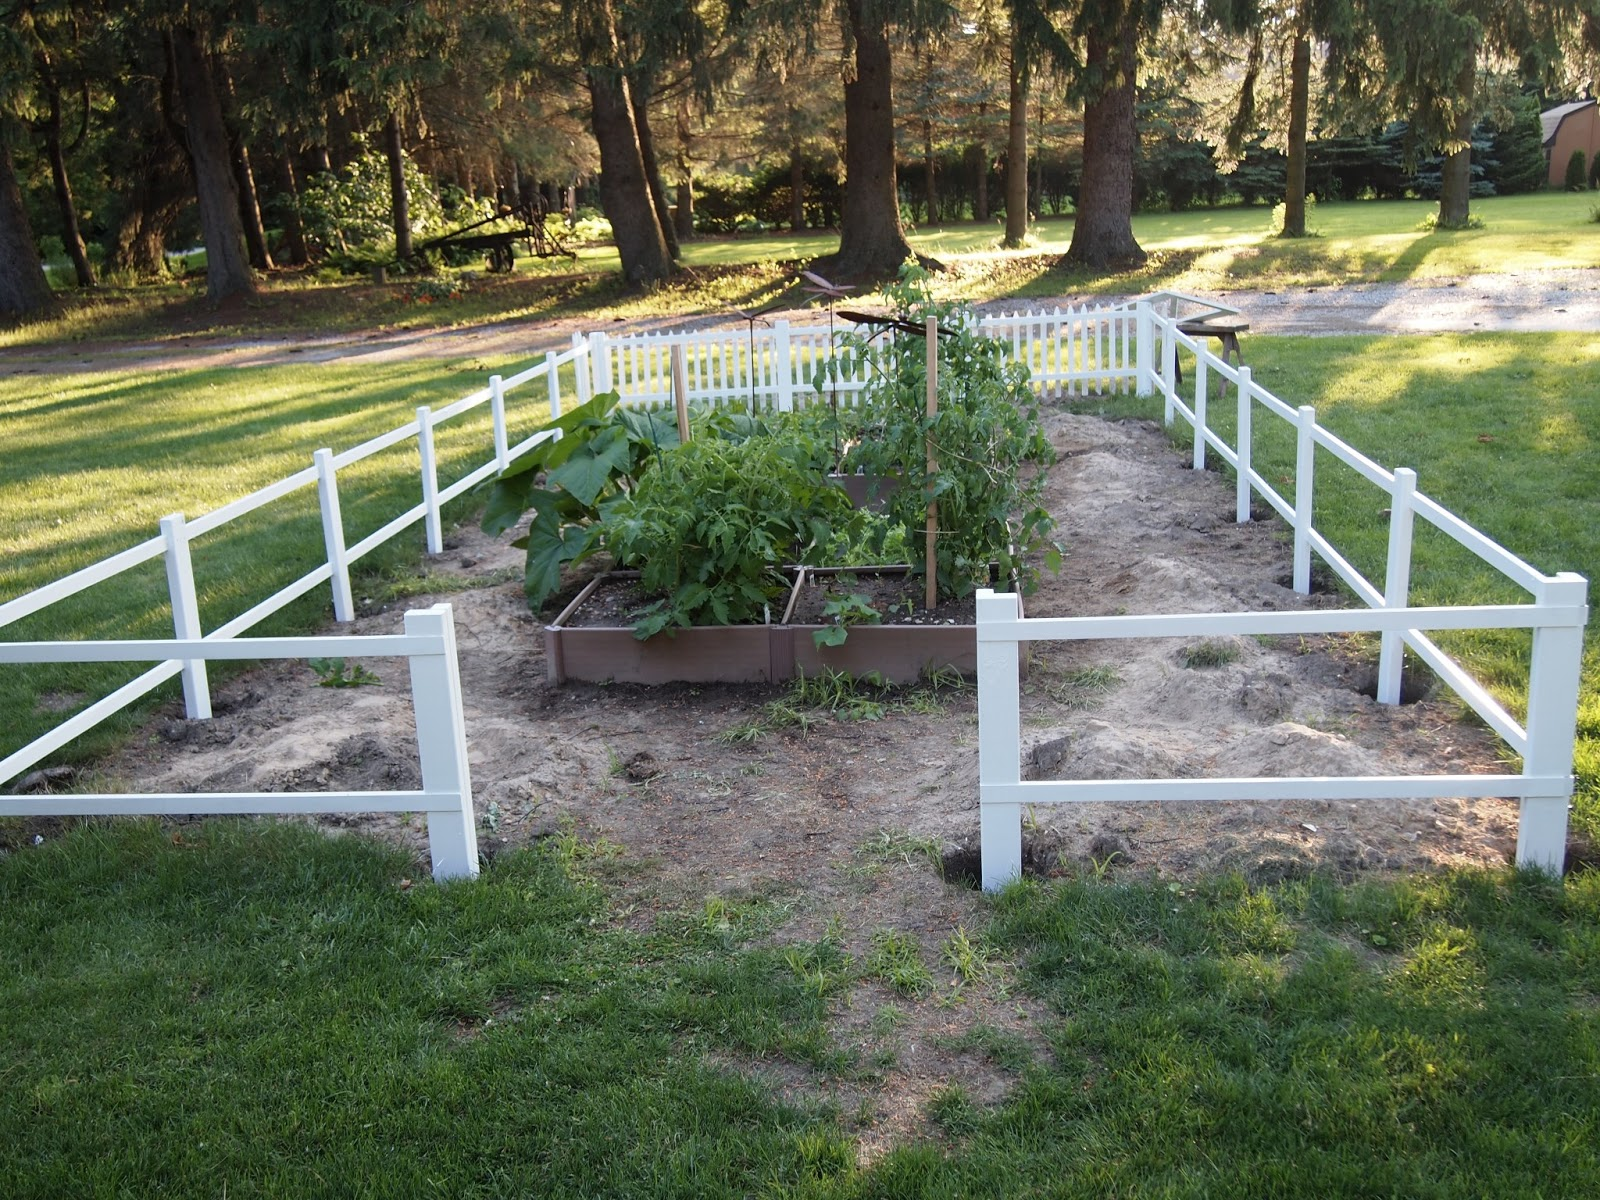 My Renovated Farmhouse: How To Build a Picket Fence on